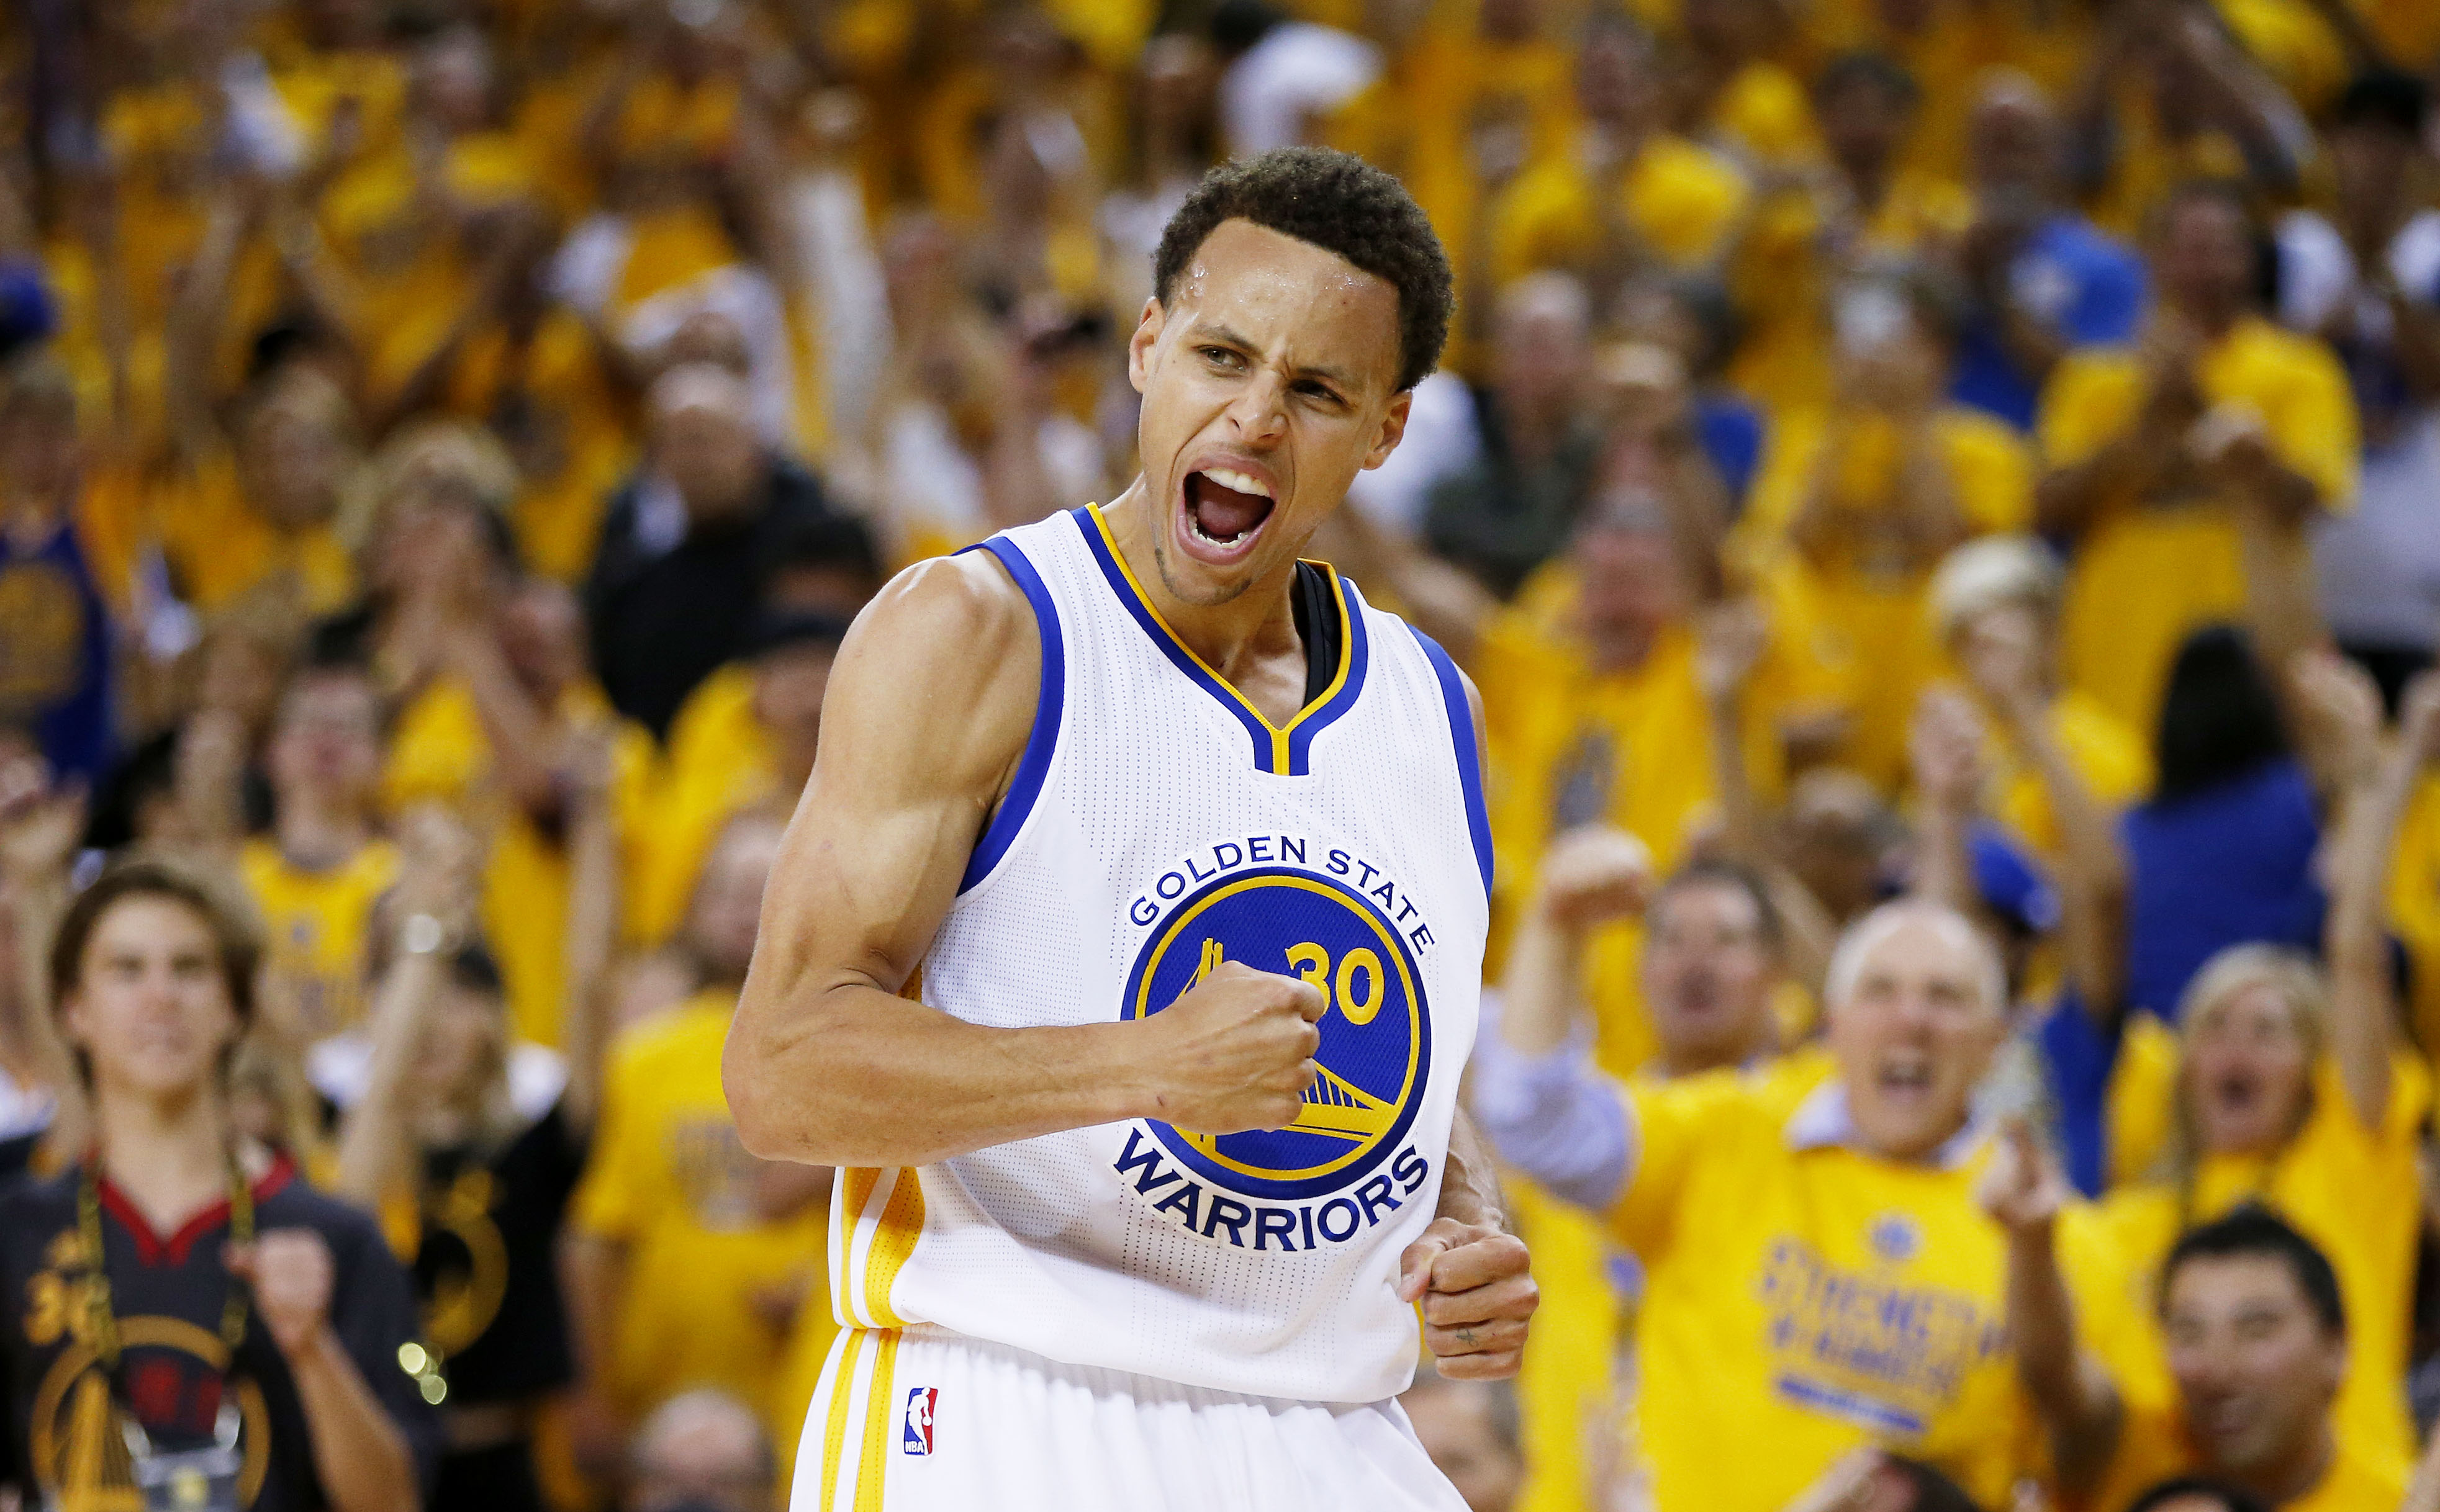 OAKLAND, CA - JUNE 14: Stephen Curry #30 of the Golden State Warriors celebrates in the second quarter against the Cleveland Cavaliers during Game Five of the 2015 NBA Finals at ORACLE Arena on June 14, 2015 in Oakland, California. NOTE TO USER: User expressly acknowledges and agrees that, by downloading and or using this photograph, user is consenting to the terms and conditions of Getty Images License Agreement. (Photo by Ezra Shaw/Getty Images)